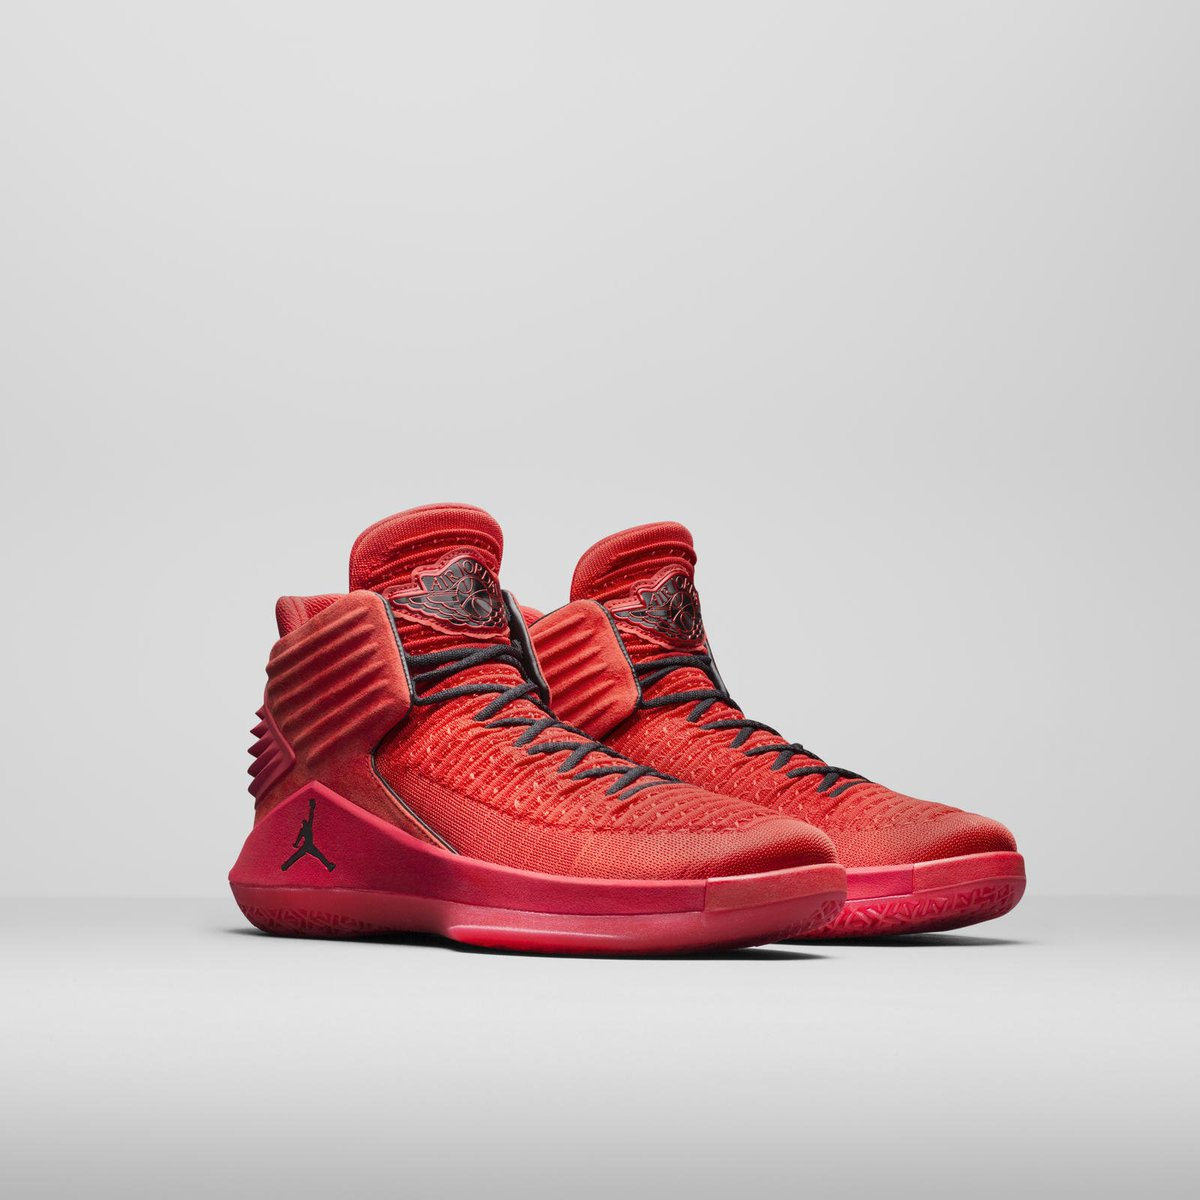 7ec90cb24c88 AIR JORDAN XXXII IS LIVE. Colorways and releases  Rosso Corsa  Sept. 23  Bred Bred Low  Oct. 18 More  https   news.nike.com news air-jordan-32   FB …